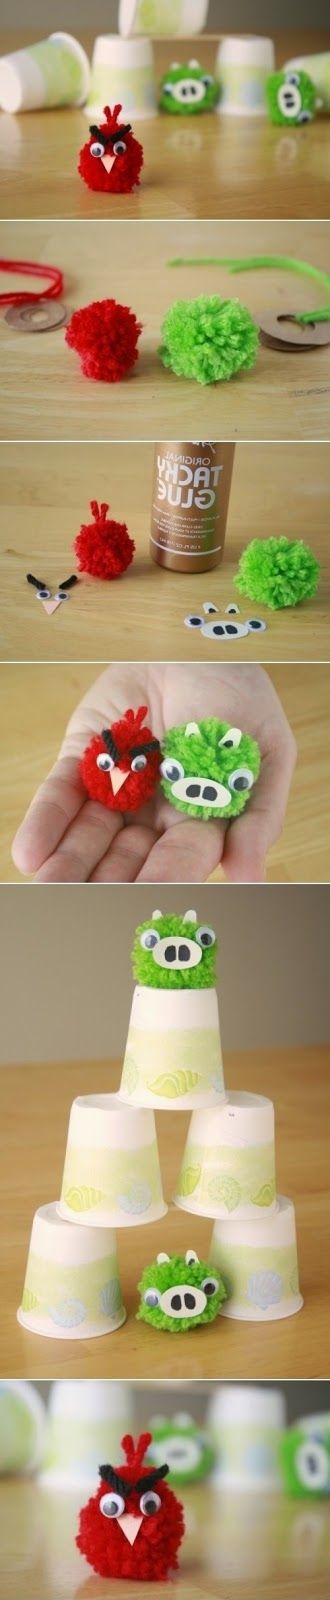 Pioneer Party: DIY Angry Birds game